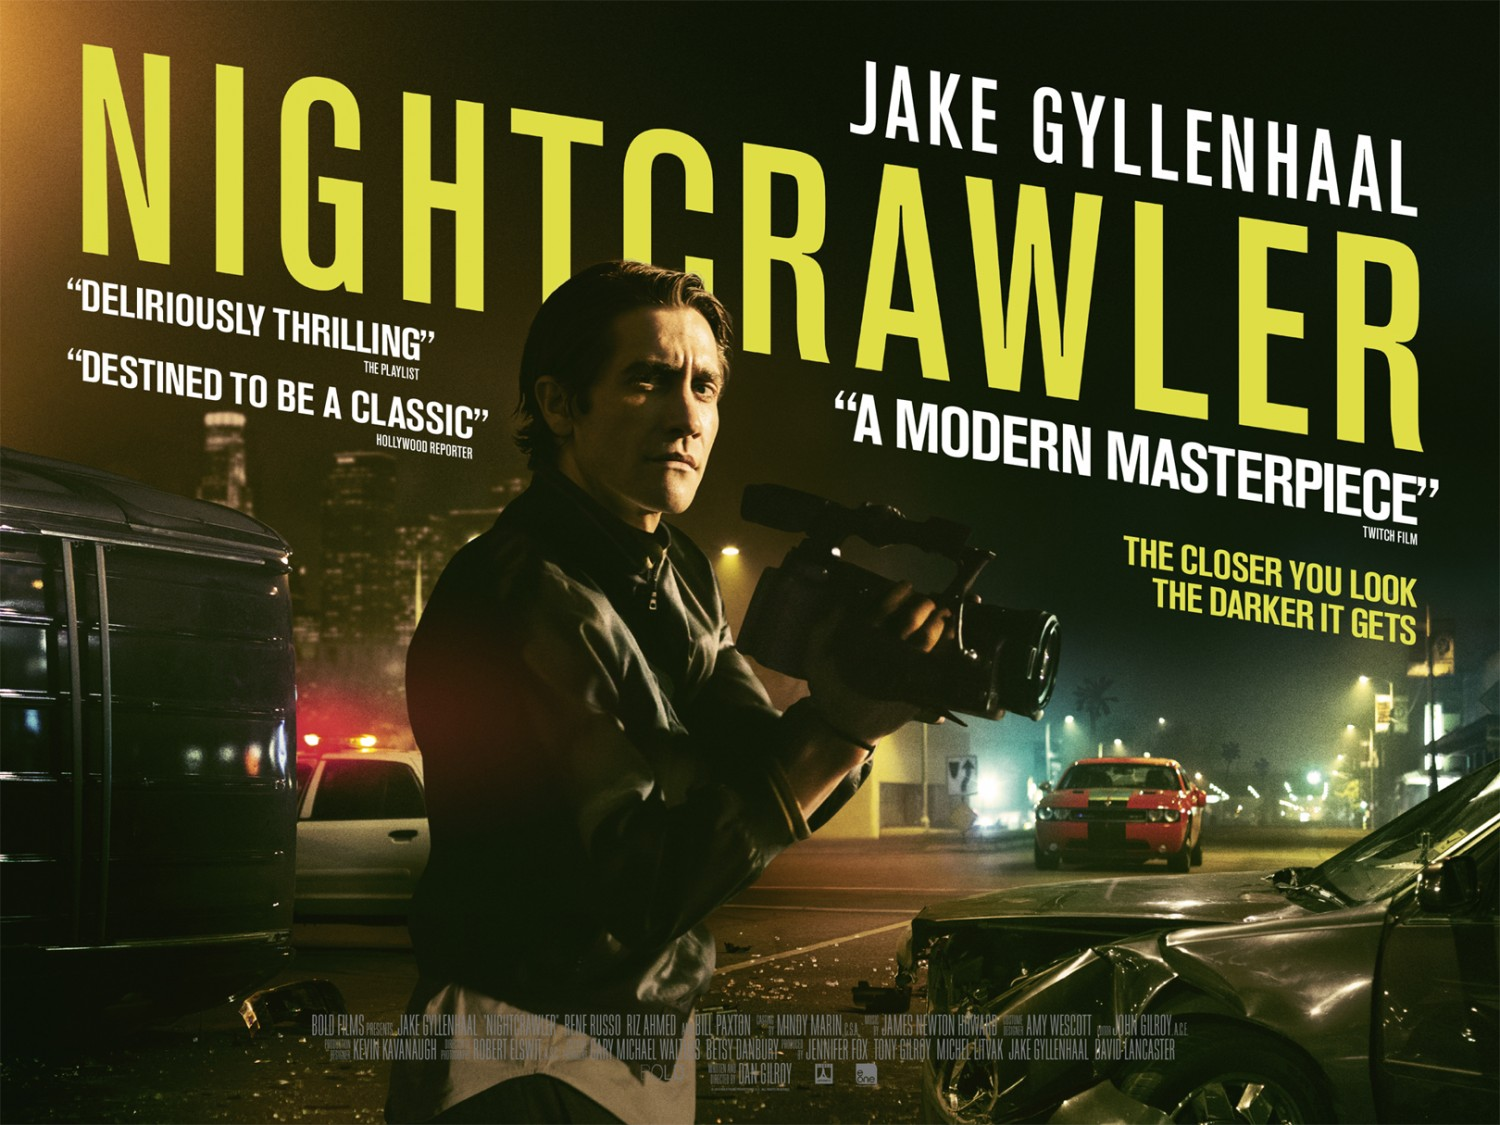 Road to Cinema Goes Inside Oscar Nominated 'Nightcrawler' with Screenwriter and Director Dan Gilroy